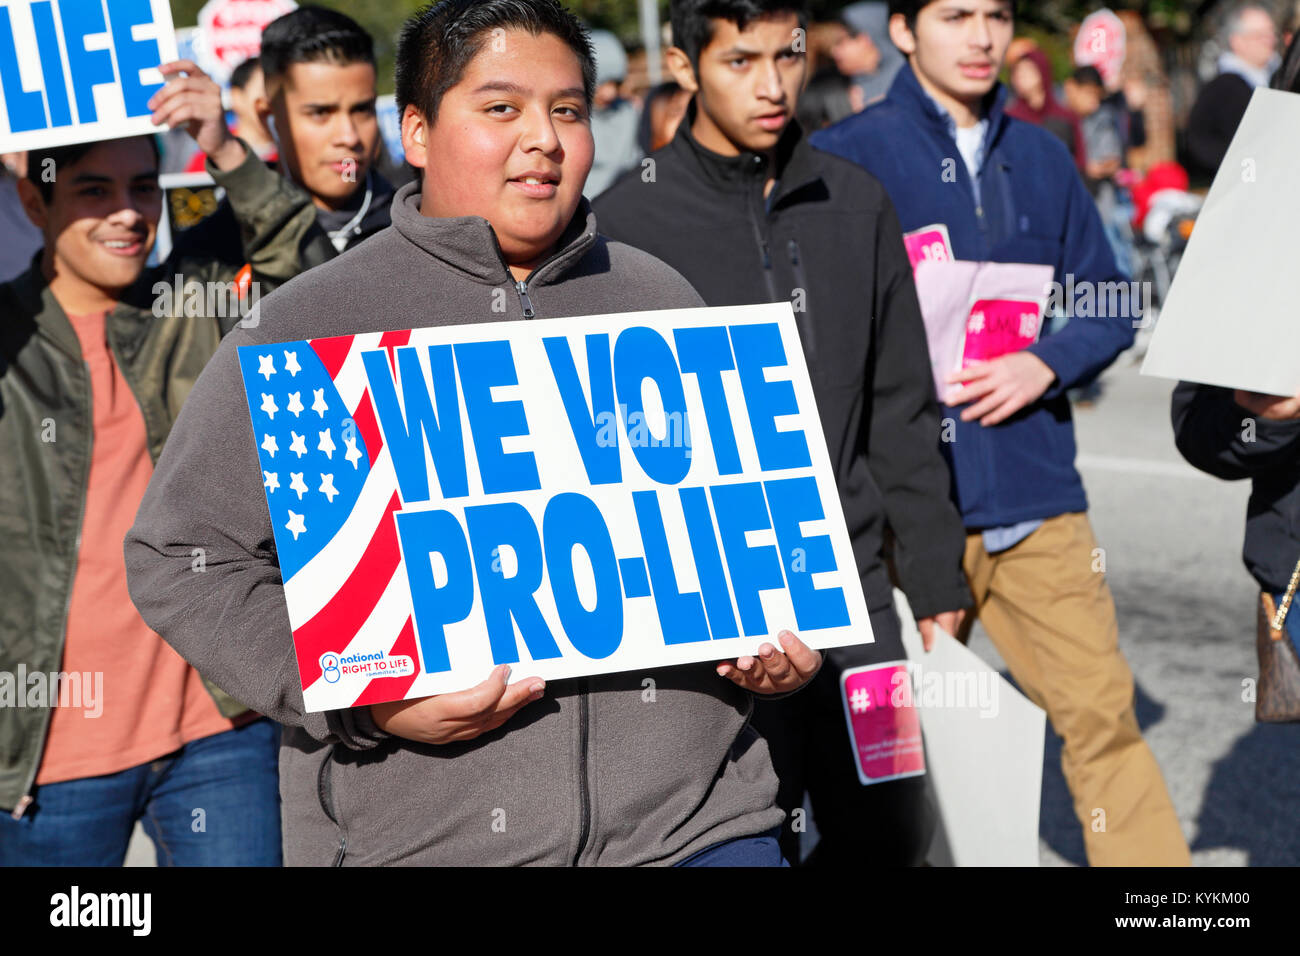 Raleigh, North Carolina. 13th January, 2018. Pro-life rally and demonstration in downtown Raleigh. - Stock Image